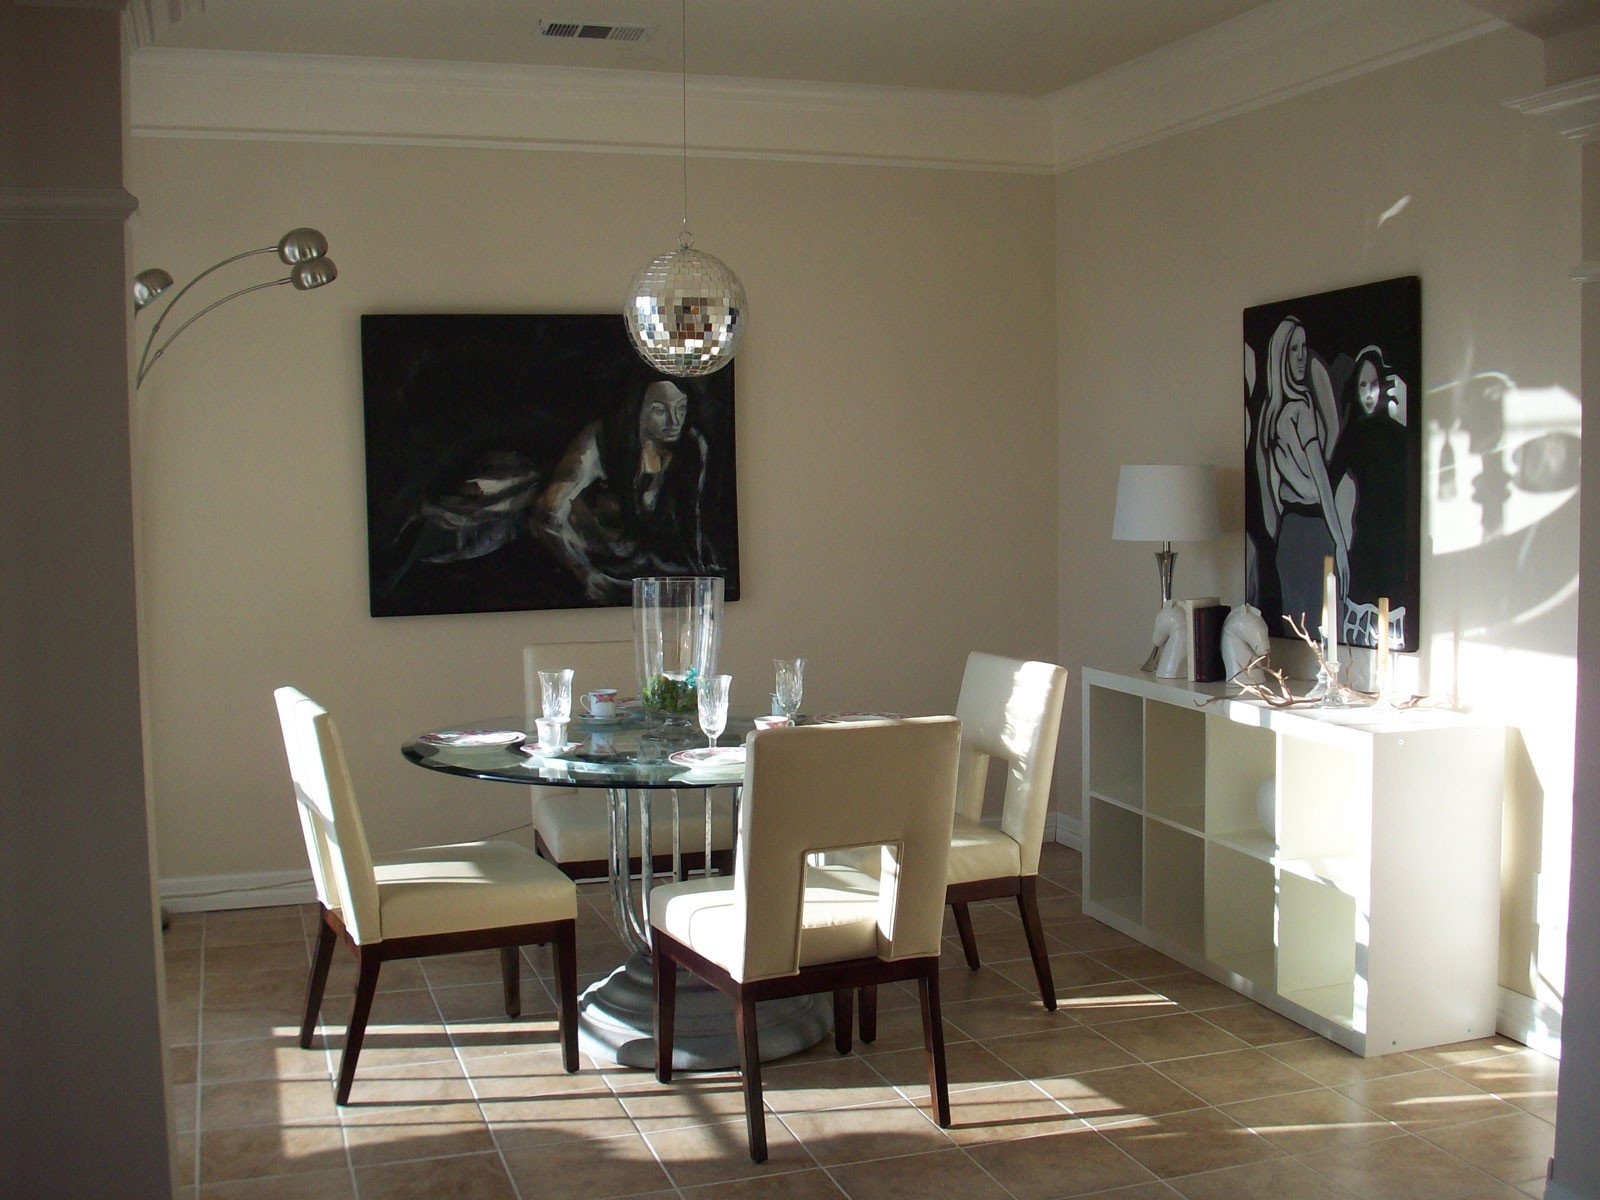 Modern Dining Room Wall Decor Awesome Creative Dining Room Wall Decor and Design Ideas Amaza Design